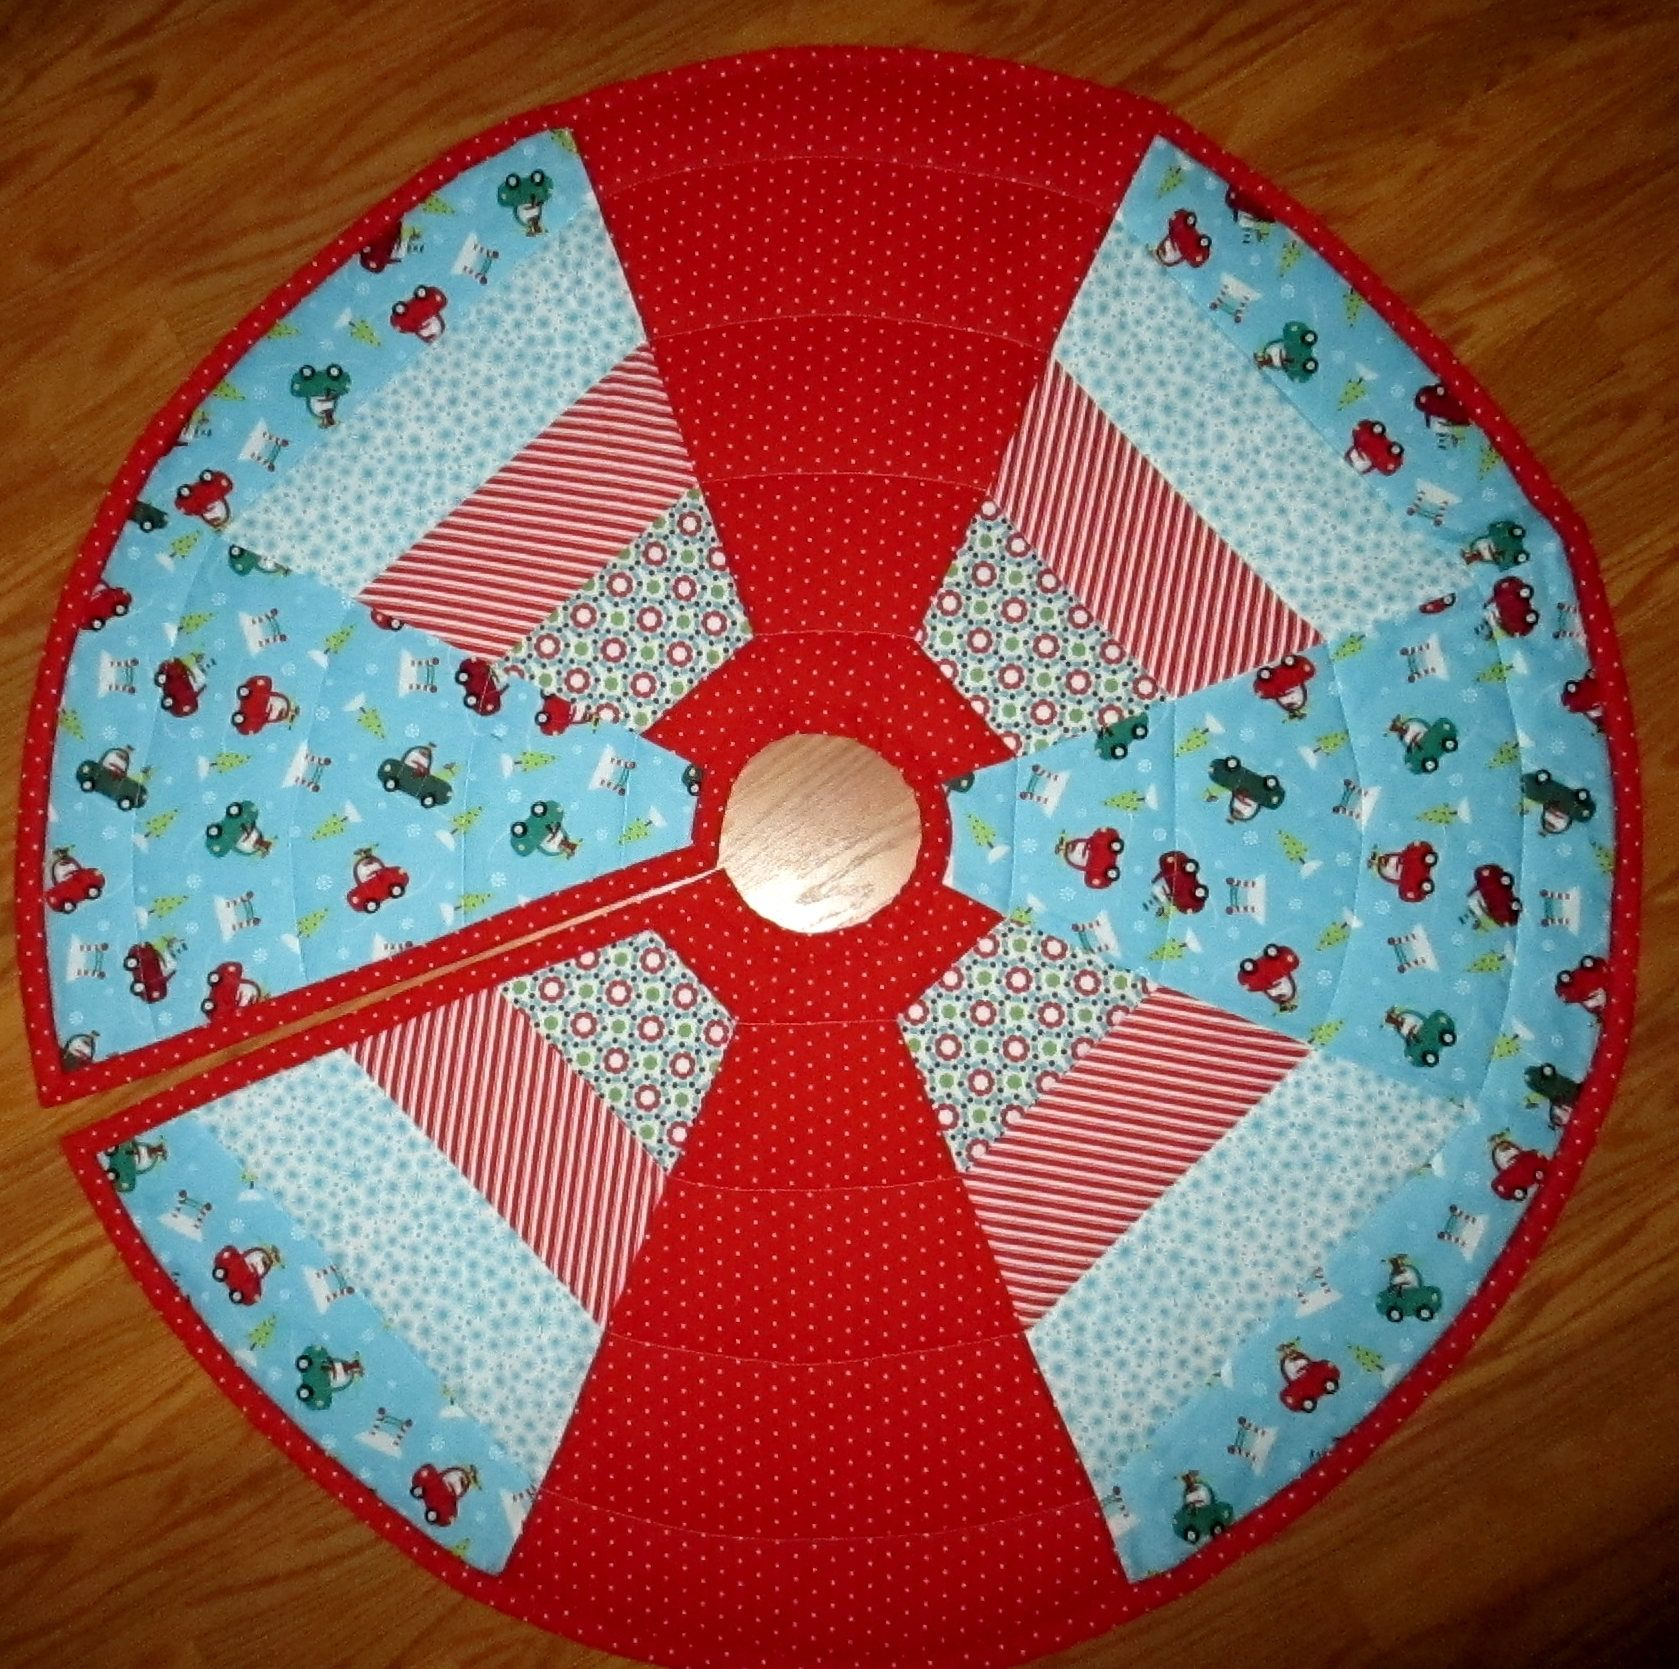 "Aqua Christmas Tree Skirt: Quilted Christmas Tree Skirt 43"" Circle Snowman In Cars"